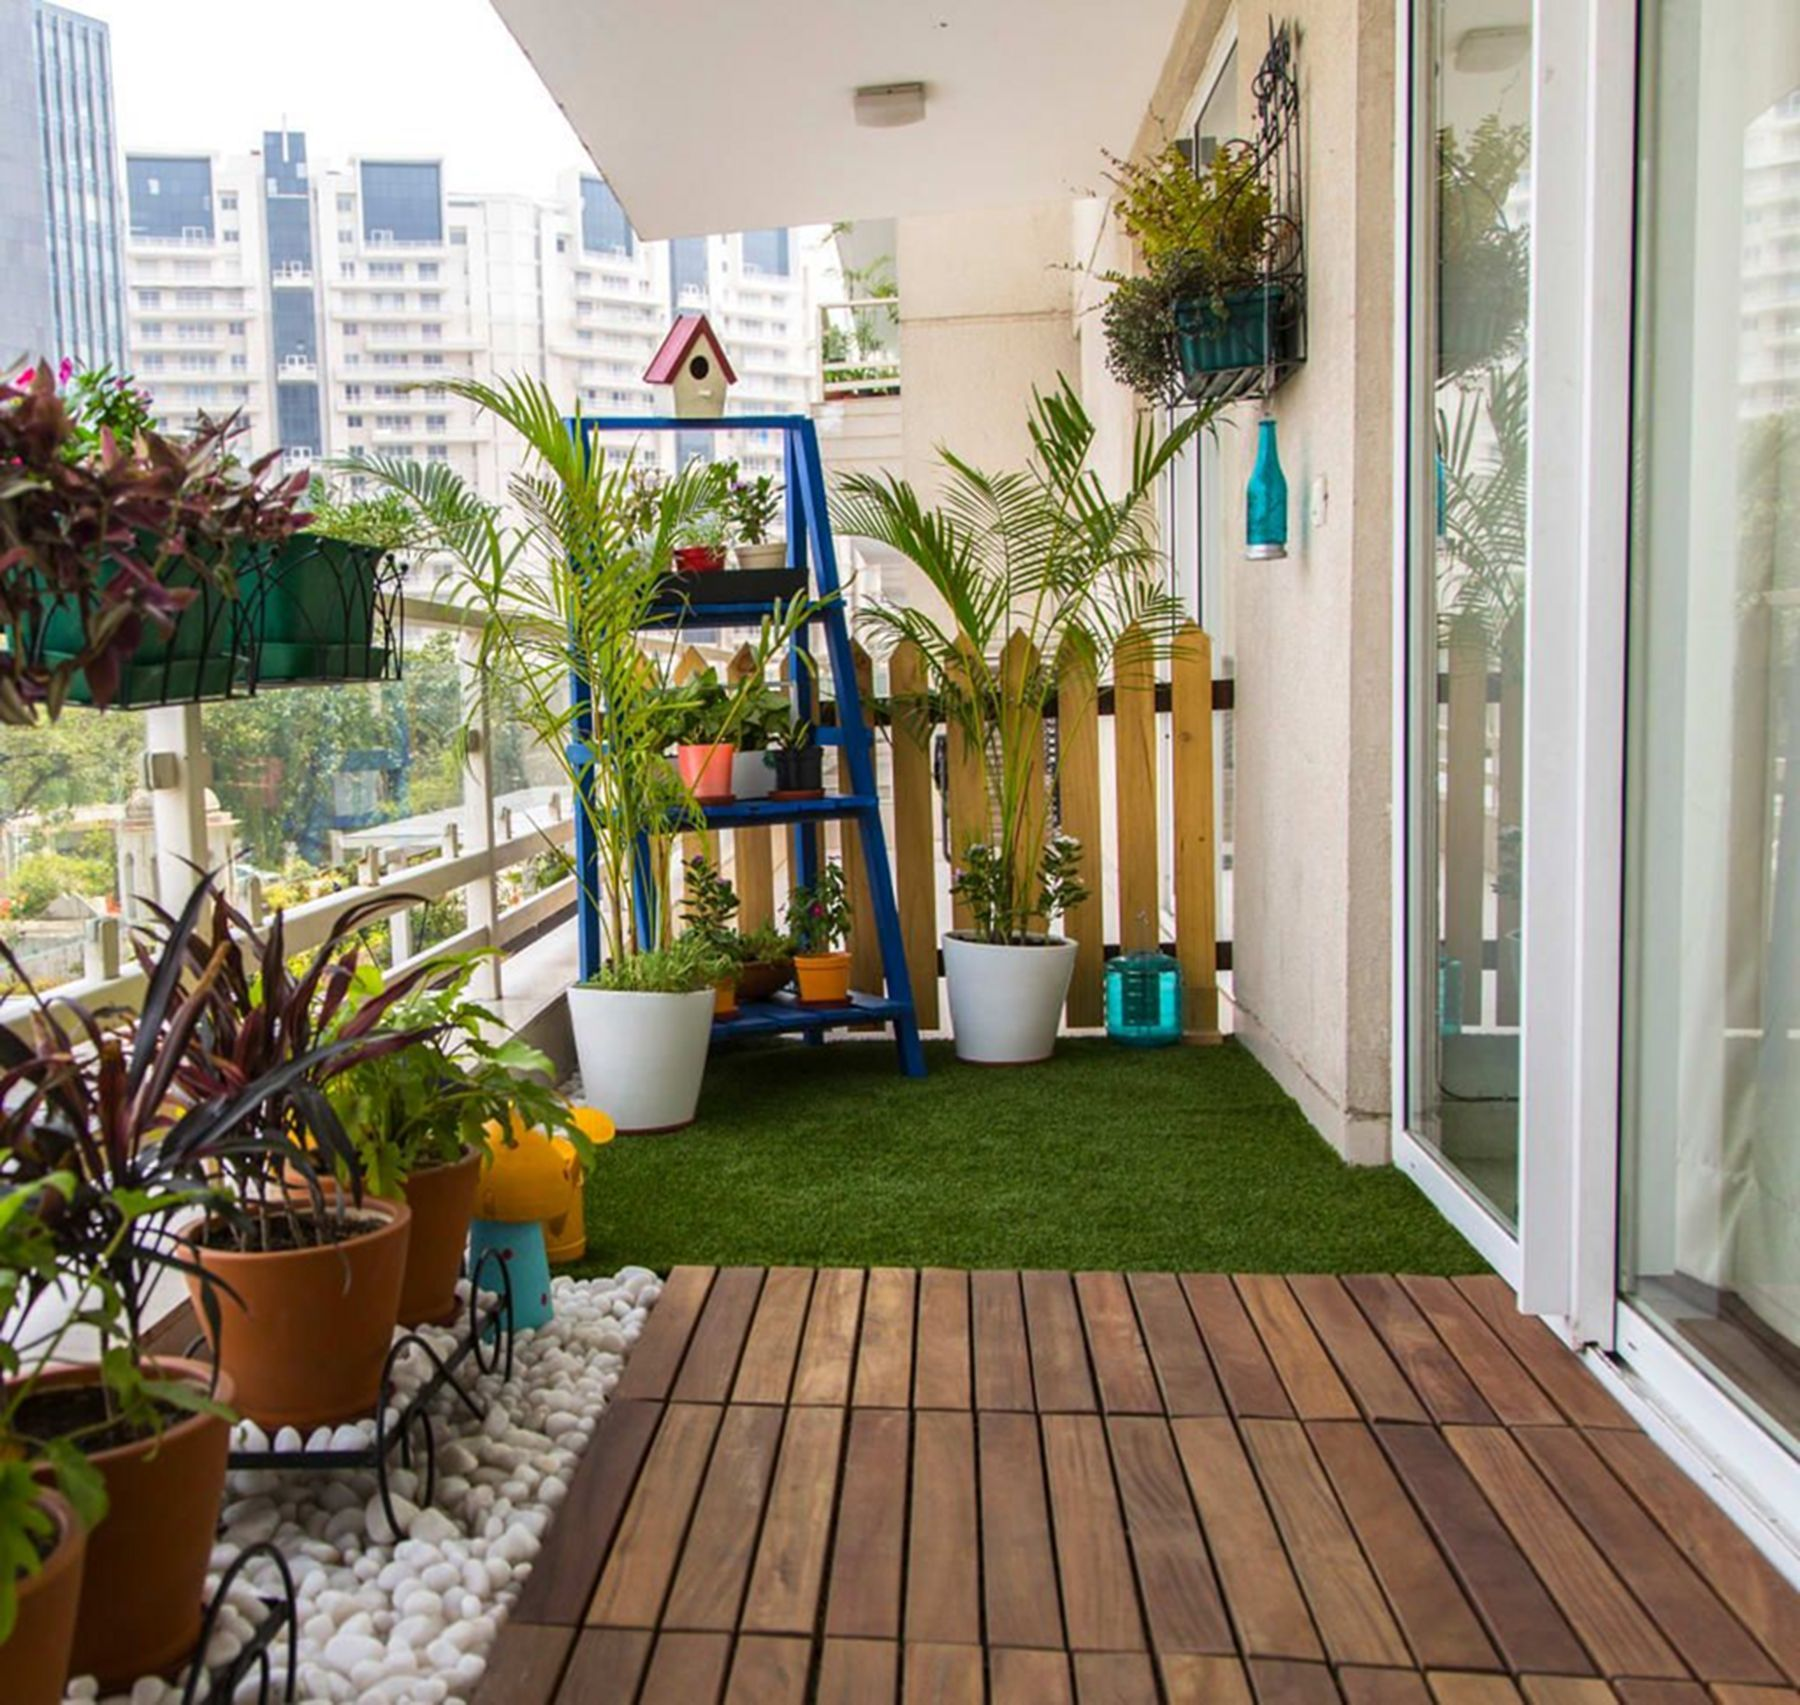 22 Smart Balcony Designs With Space Saving Furniture And Planters Small Balcony Garden Vertical Garden Design Small Balcony Design